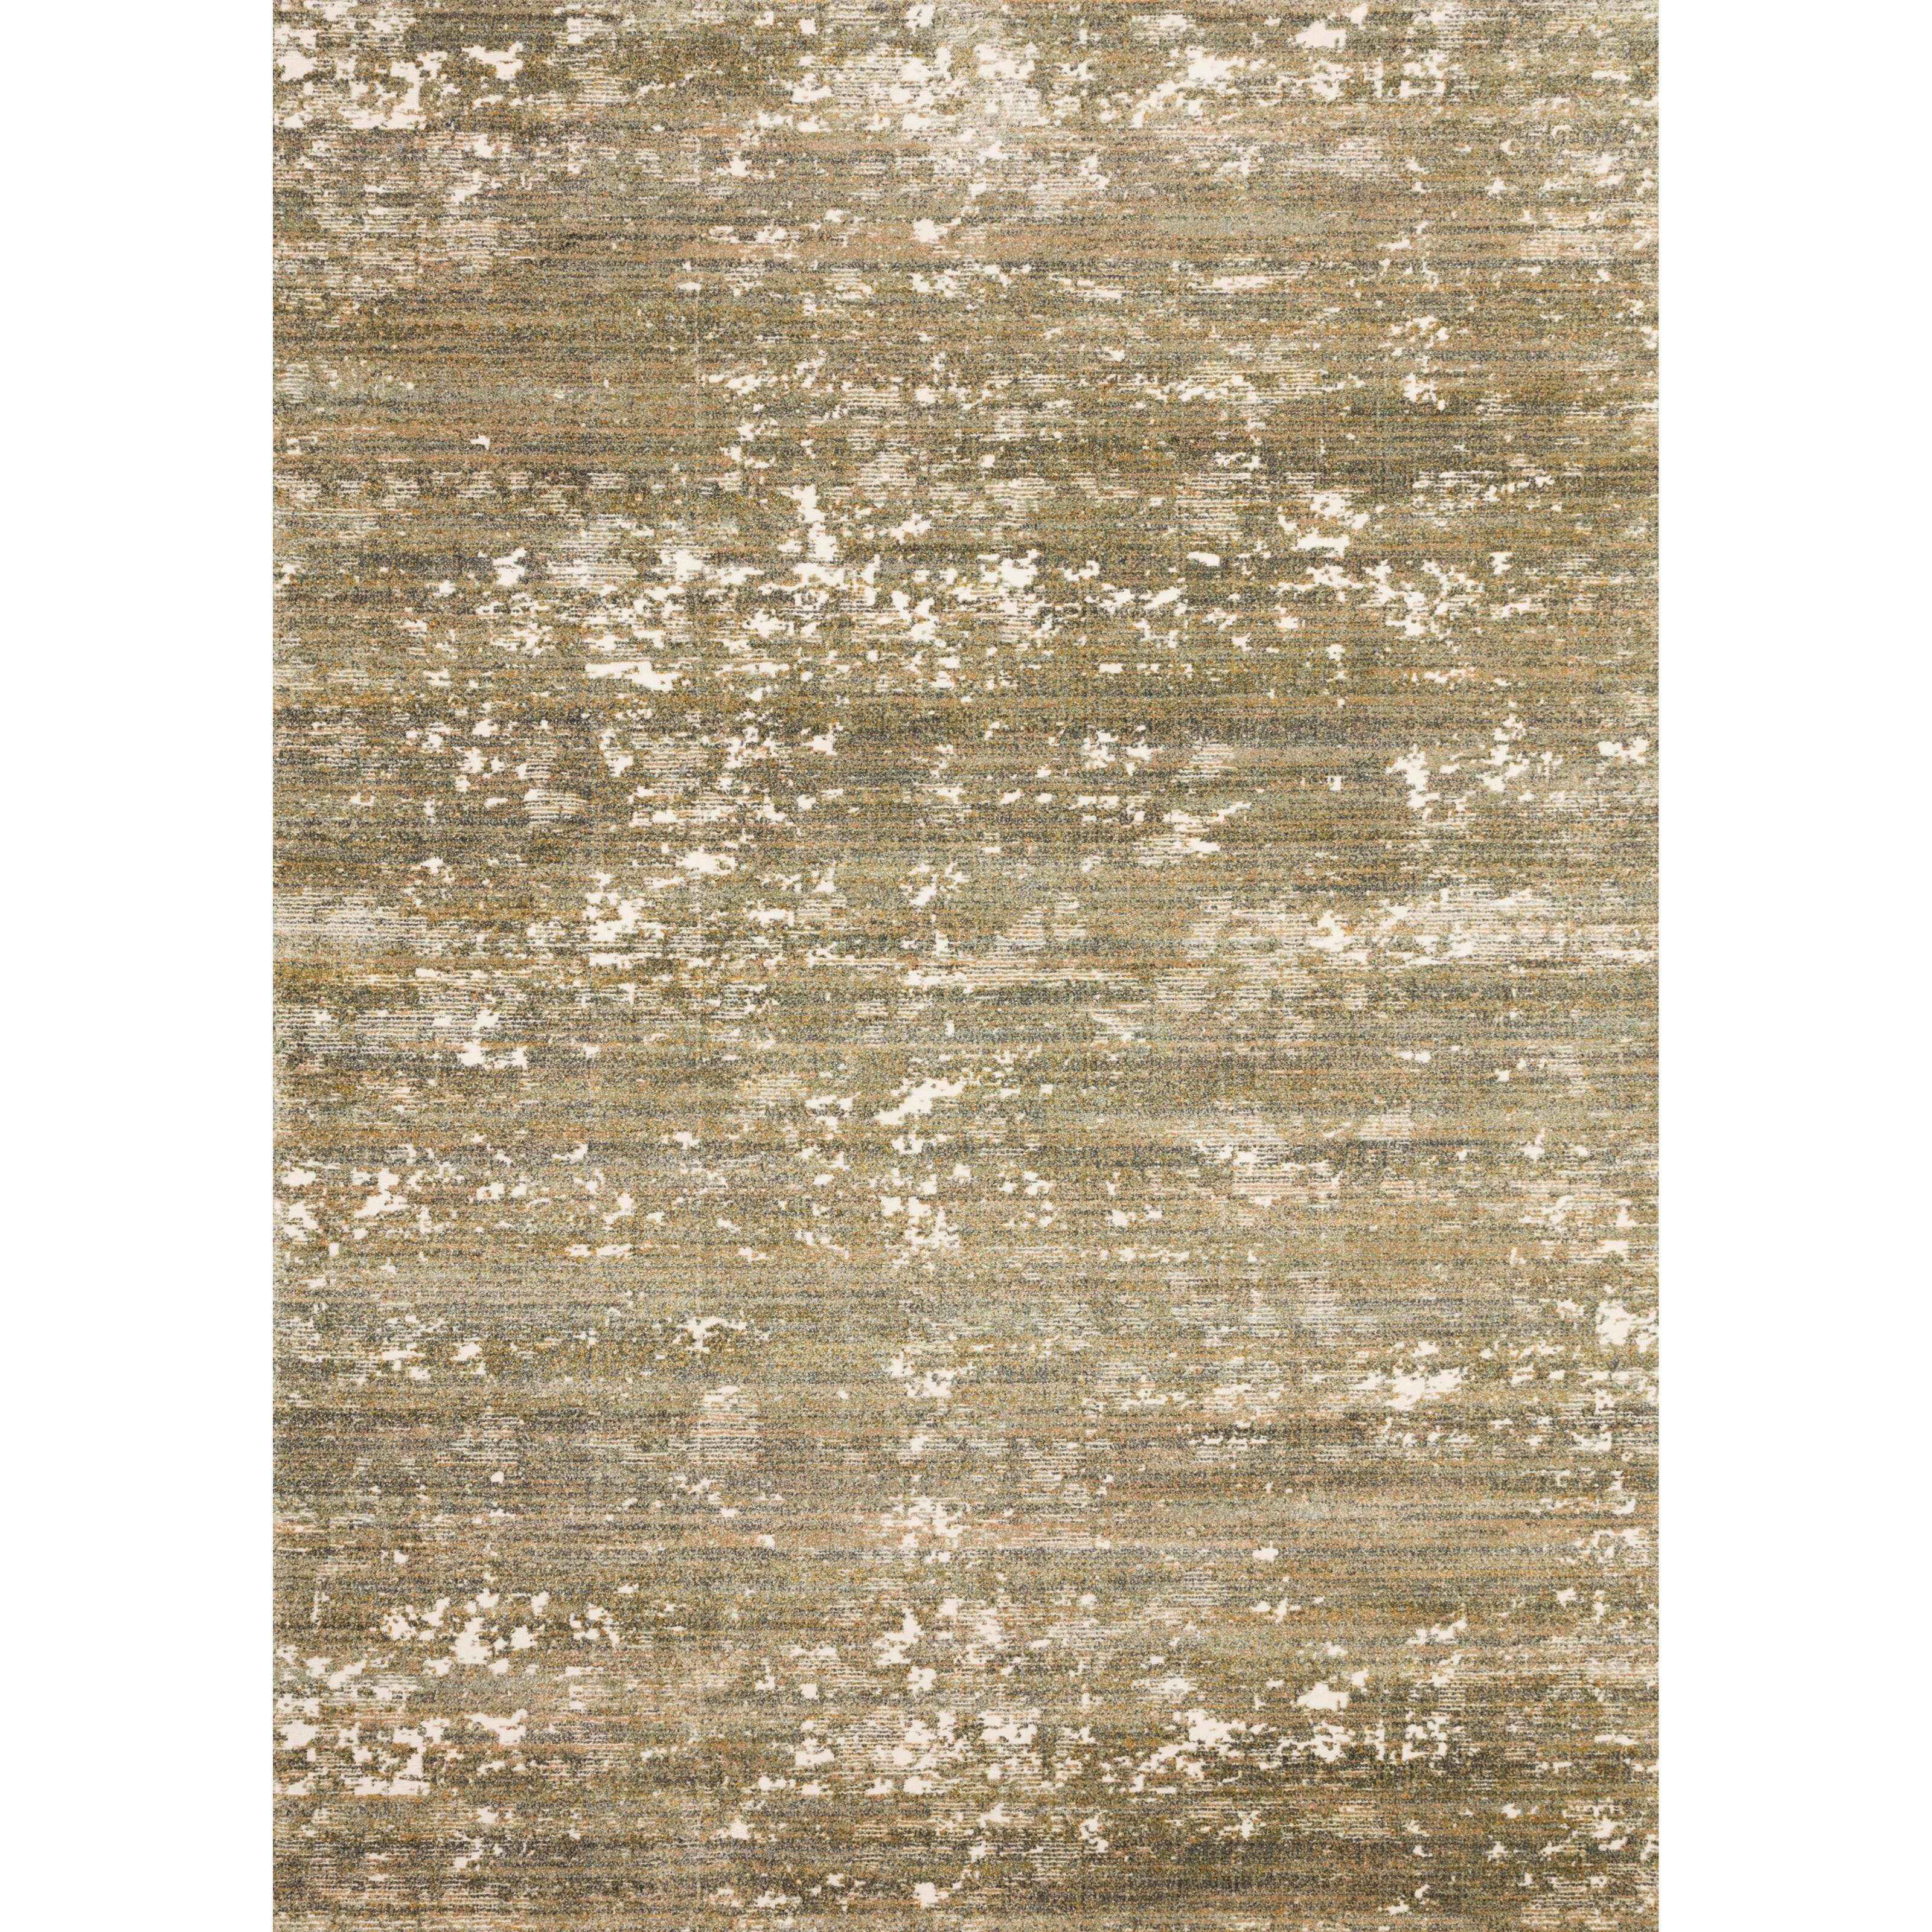 "Augustus 2'7"" x 13' Moss / Spice Rug by Loloi Rugs at Virginia Furniture Market"